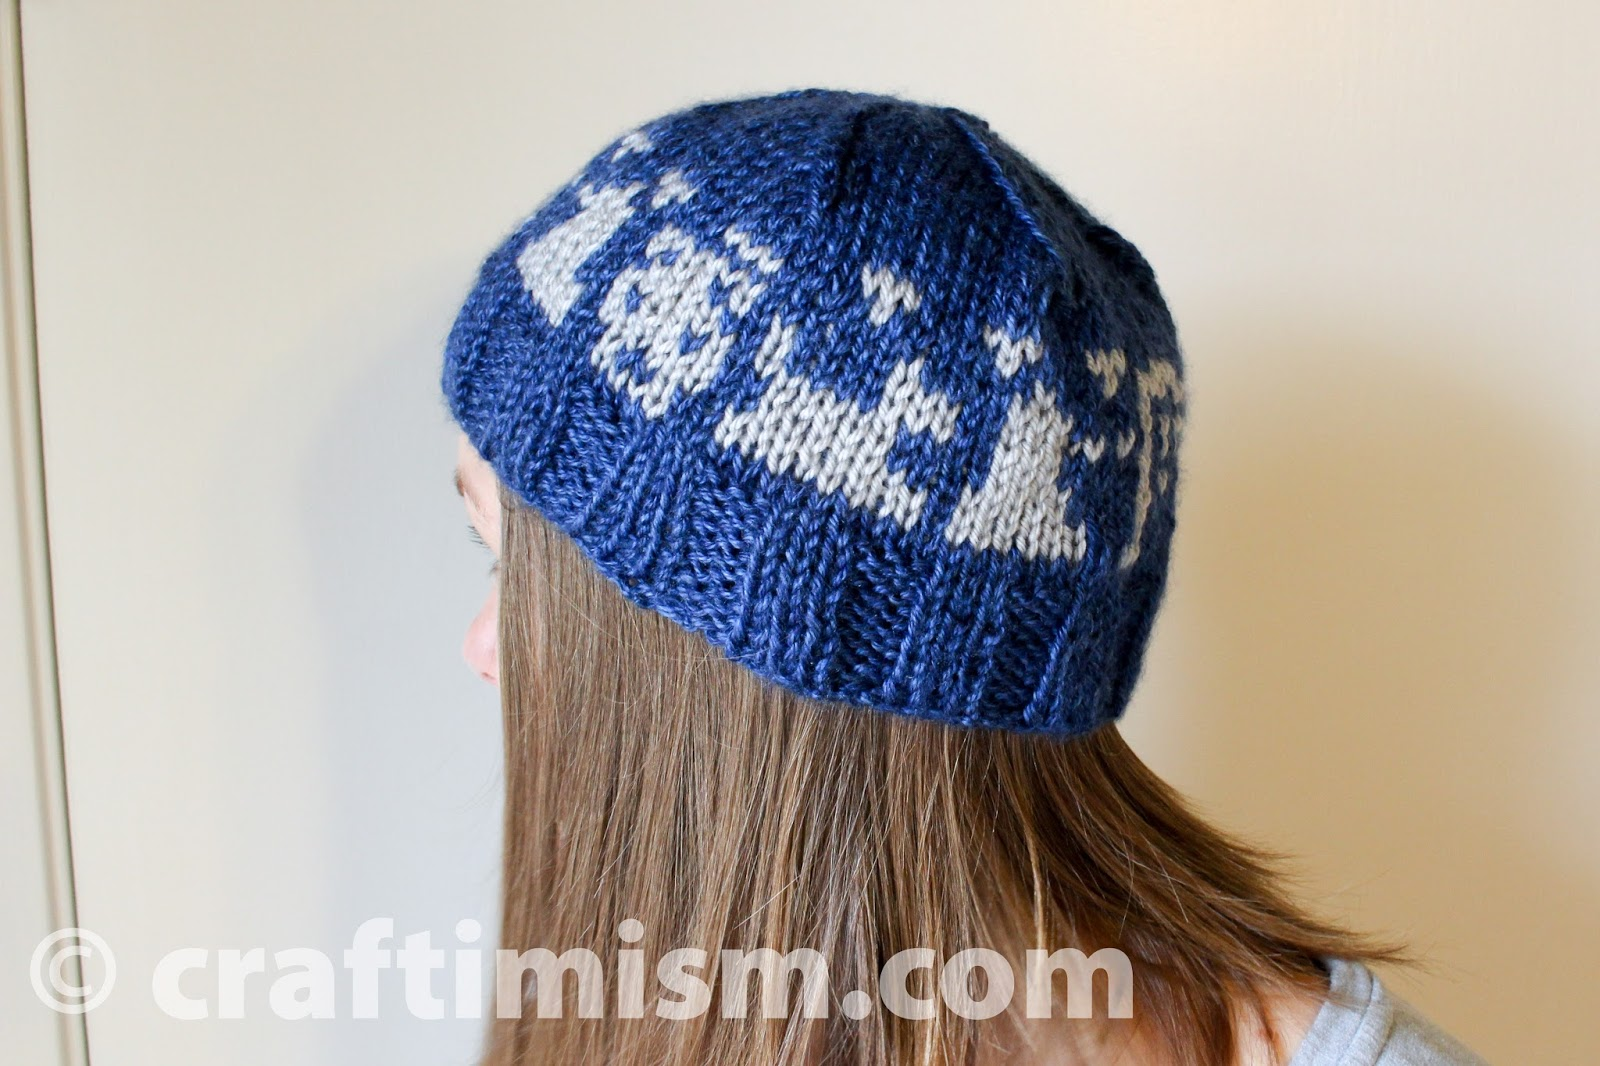 Craftimism: Doctor Who inspired knit hat